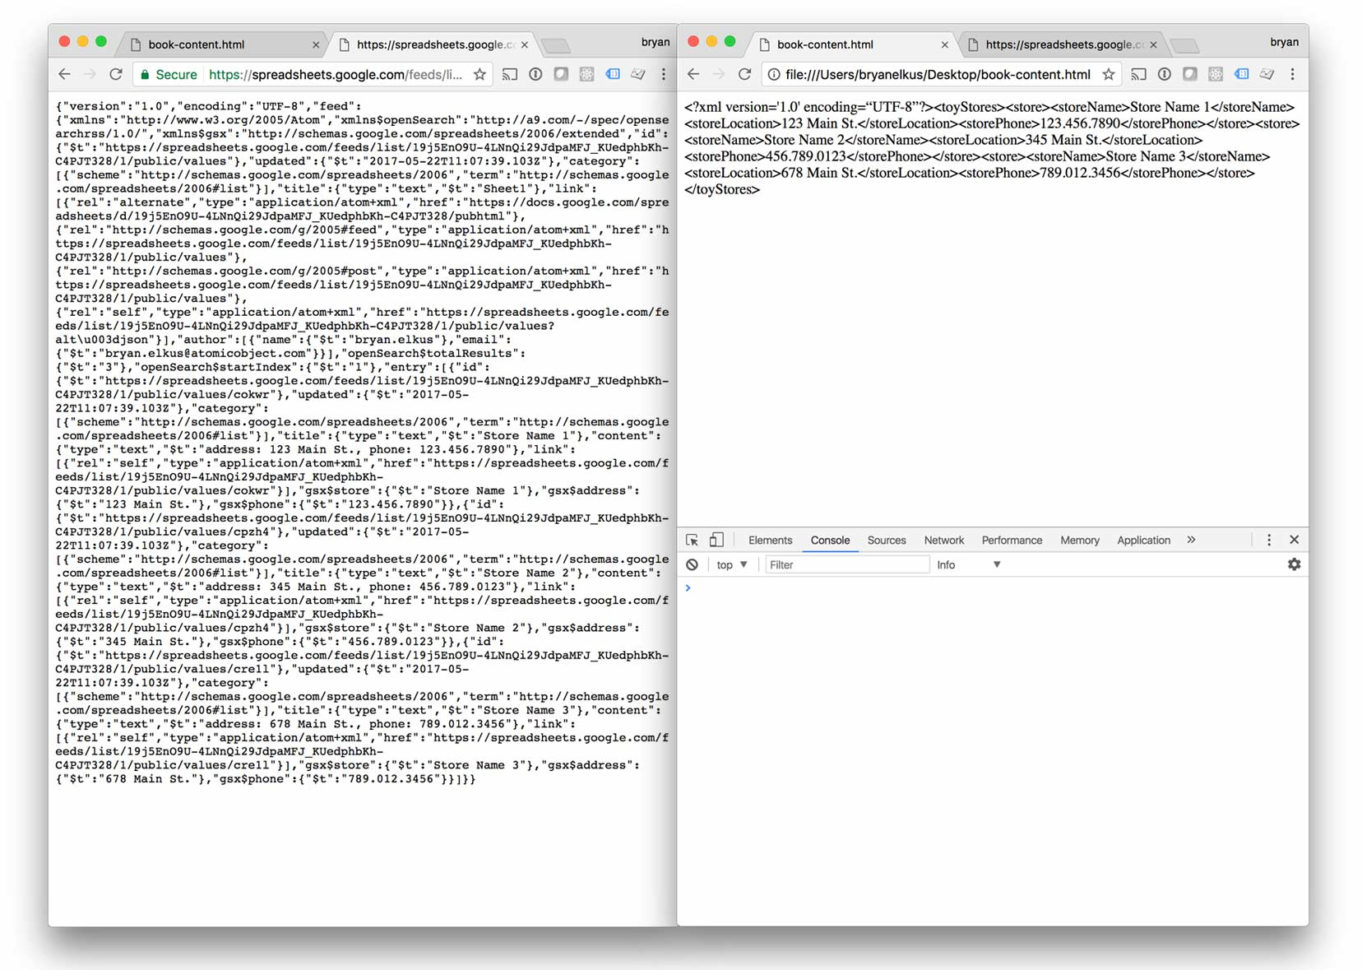 google spreadsheet to json converter json to spreadsheet converter  Json To Spreadsheet Converter With Regard To Json To Xml With Angularjs In Preparation For Indesign Json To Spreadsheet Converter Google Spreadshee